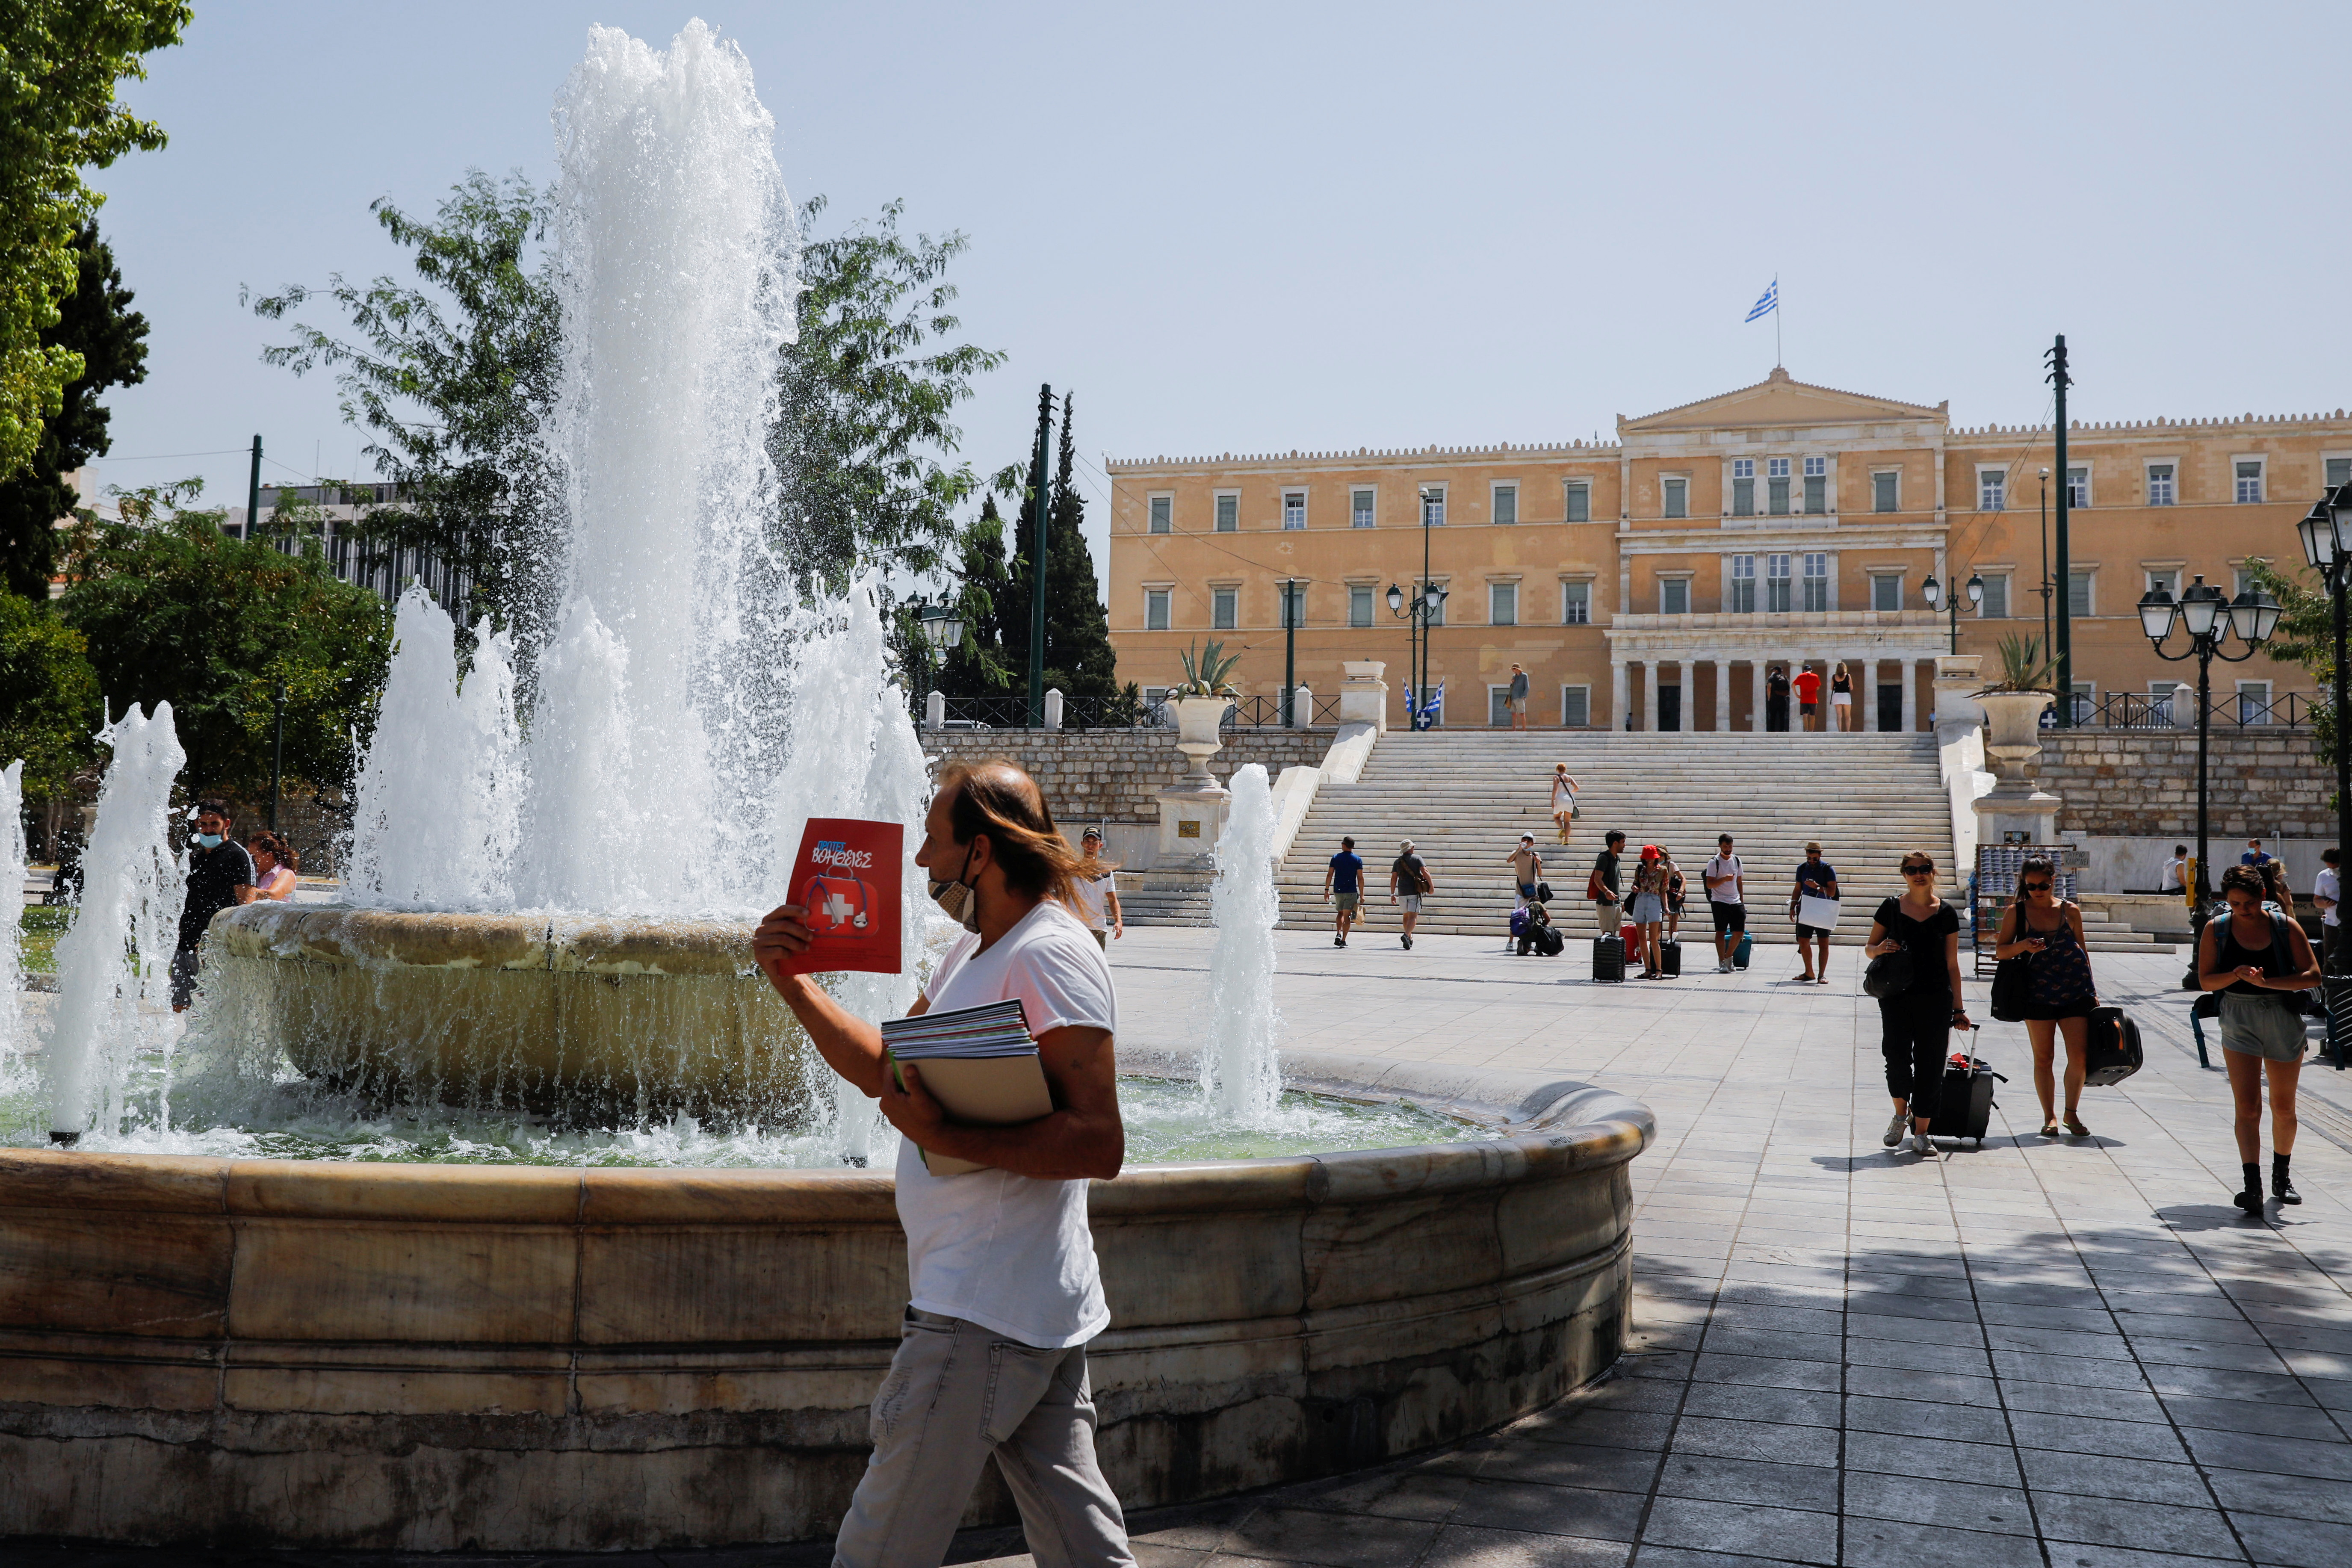 People make their way to Syntagma square during a heatwave in Athens, Greece, August 2, 2021. REUTERS/Costas Baltas